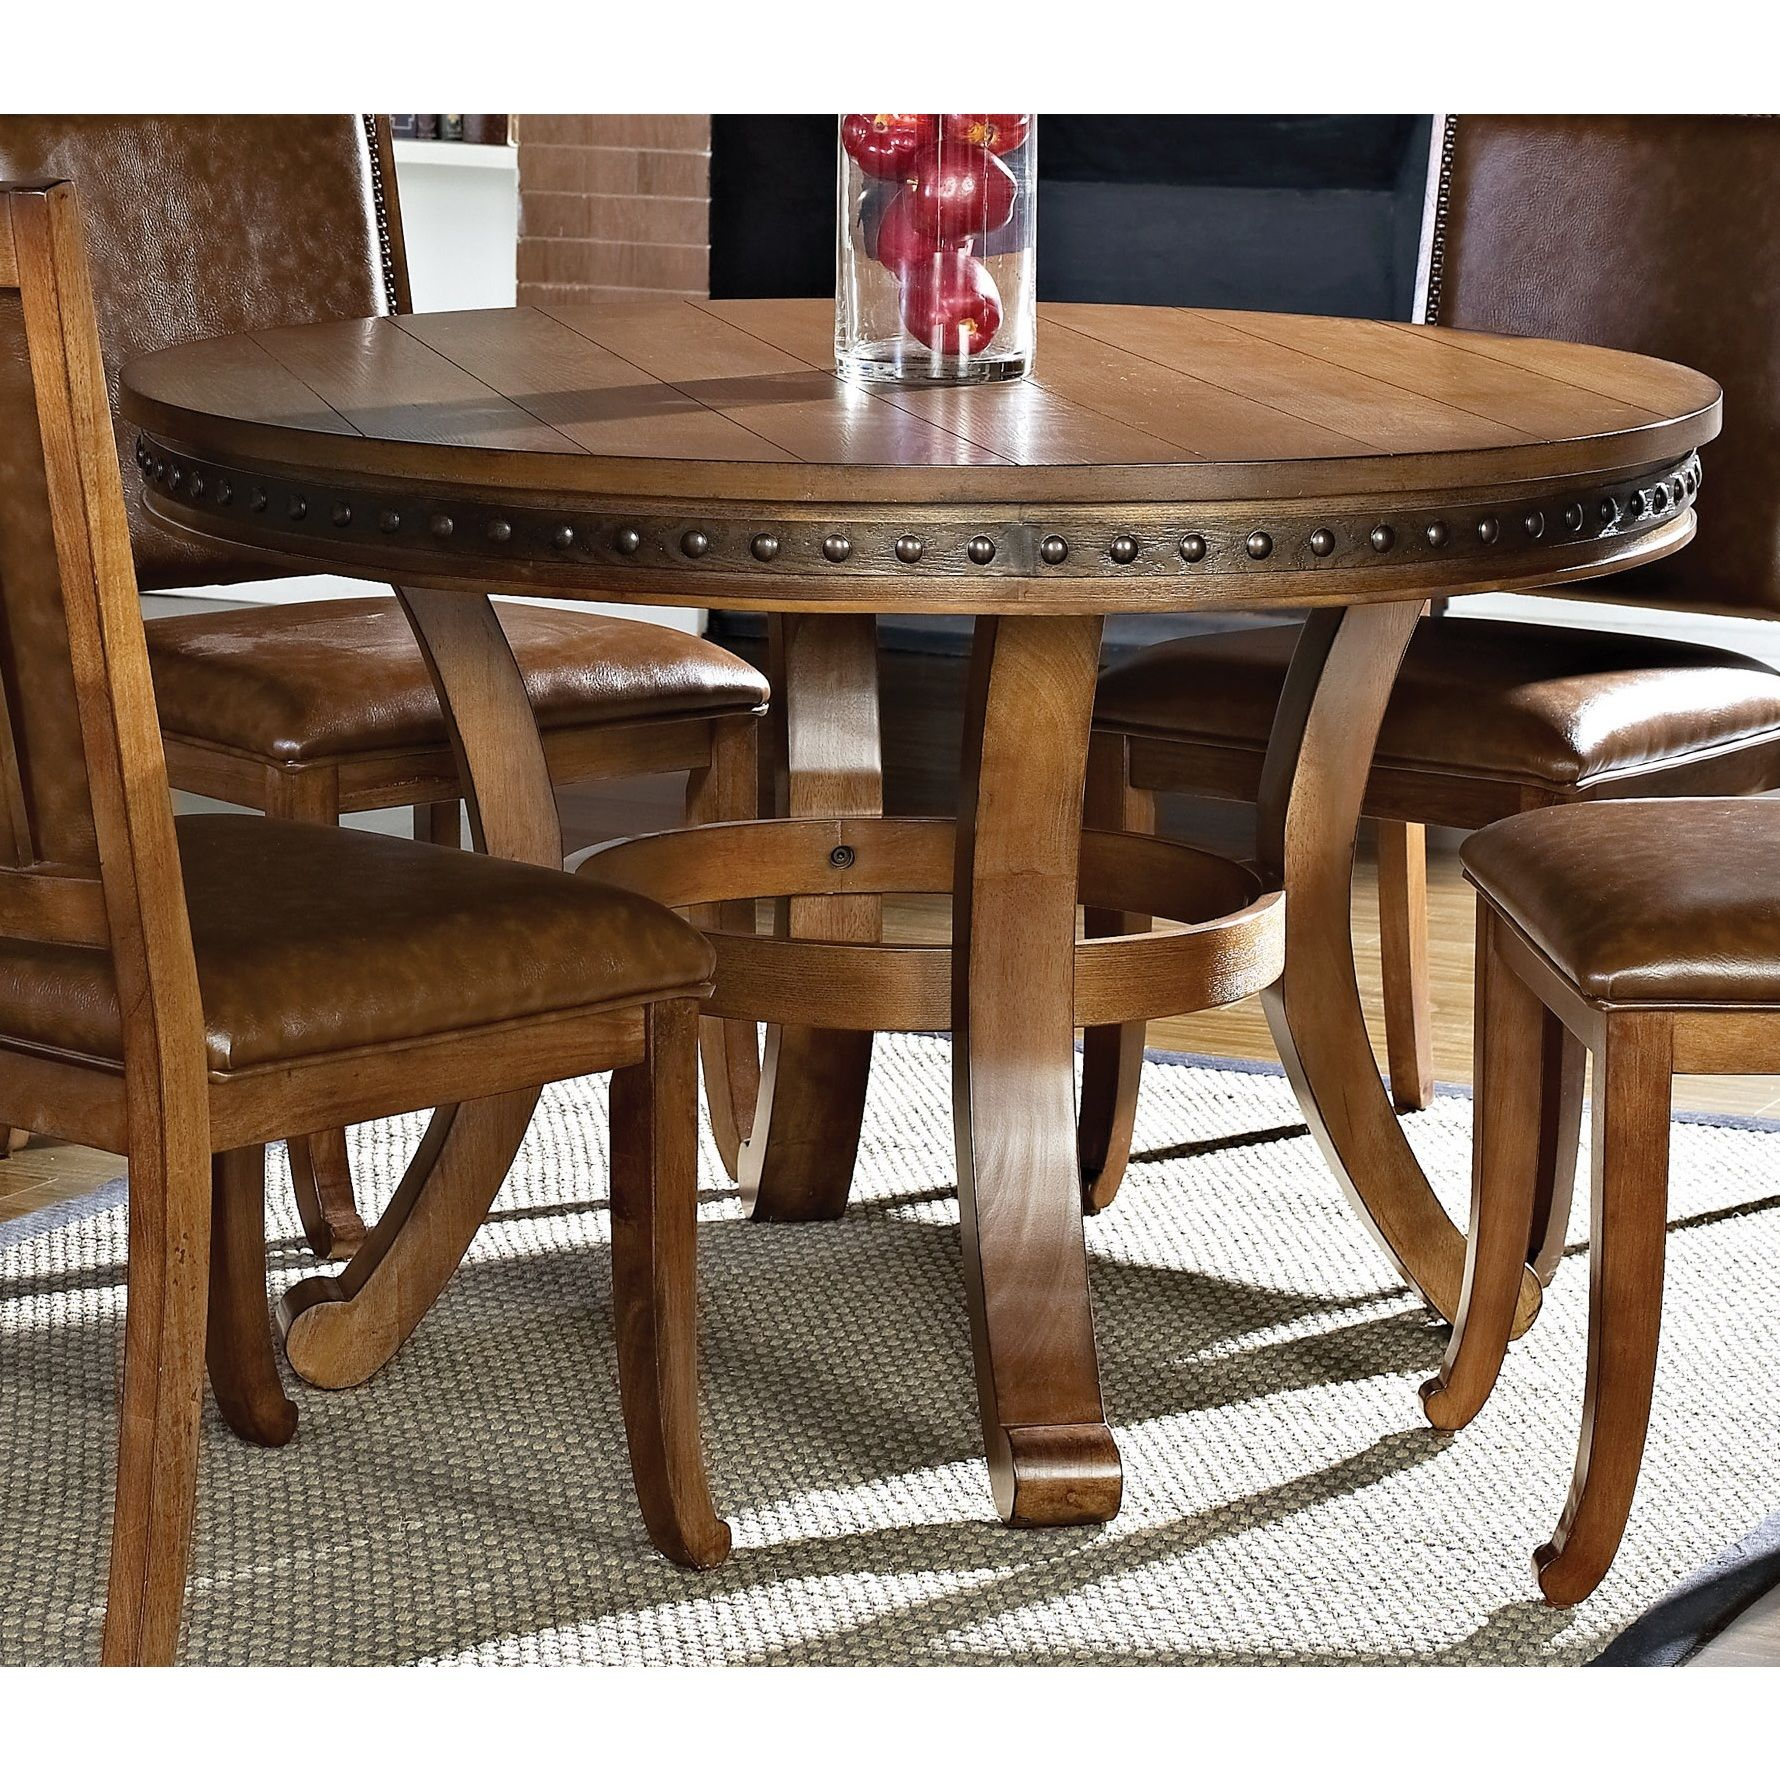 Overstock Com Online Shopping Bedding Furniture Electronics Jewelry Clothing More Kitchen Table Settings Round Kitchen Table Set Round Kitchen Table